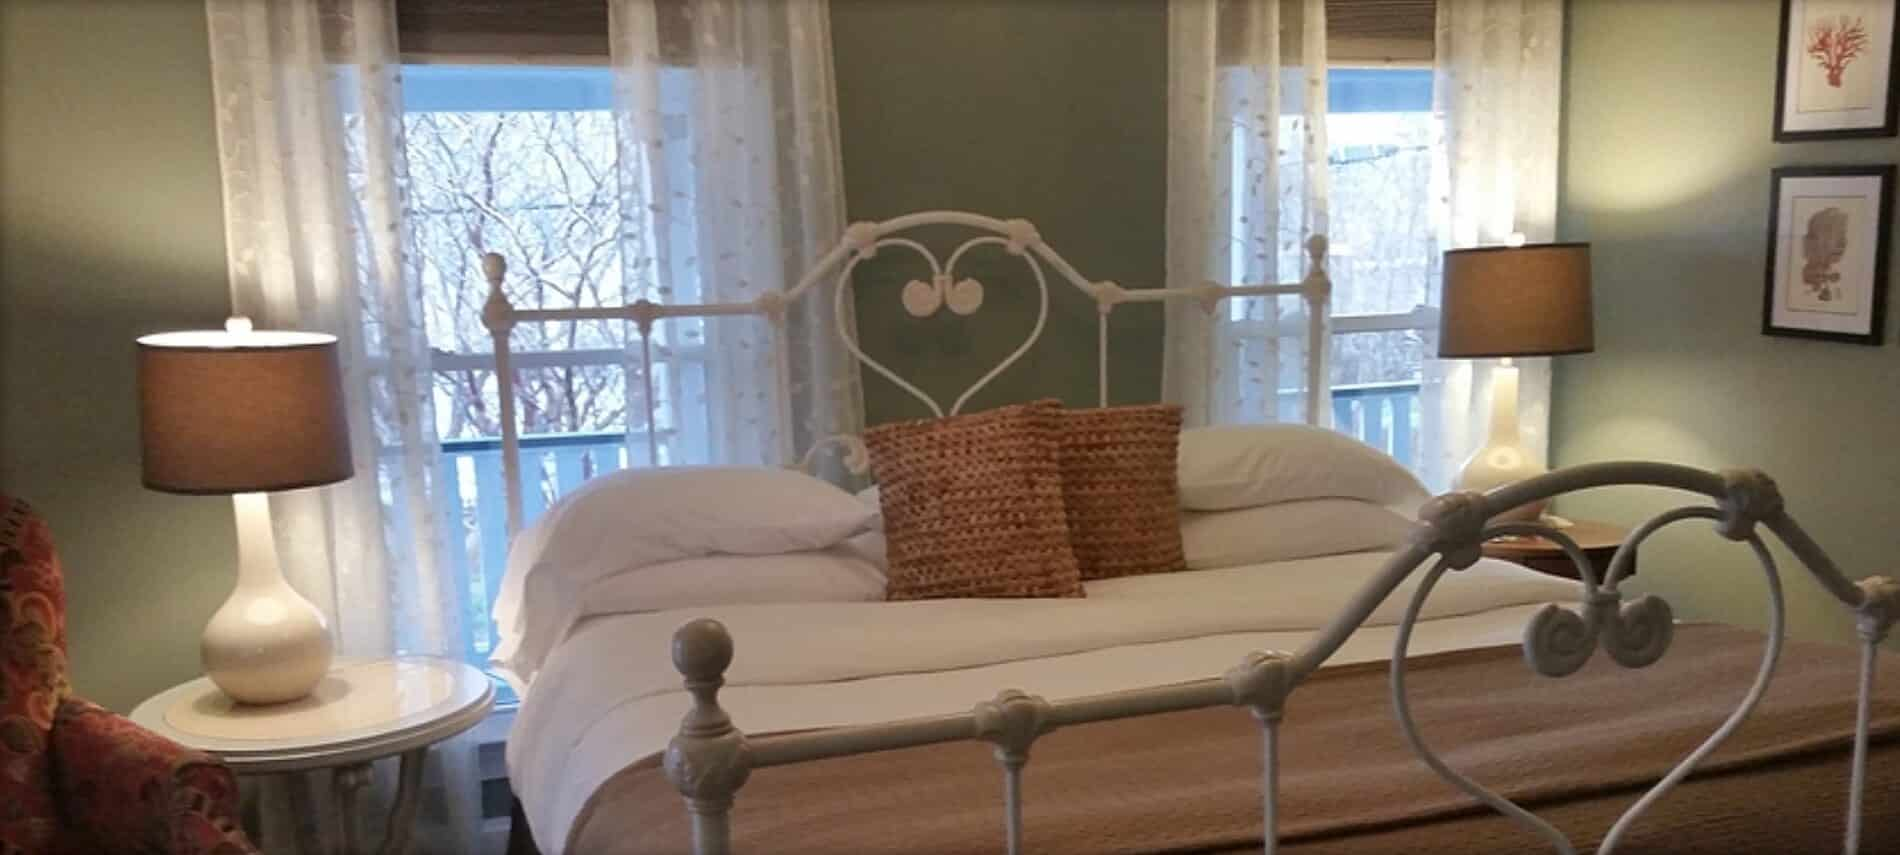 White iron bed with several pillows sits under two windows with sheer curtains.